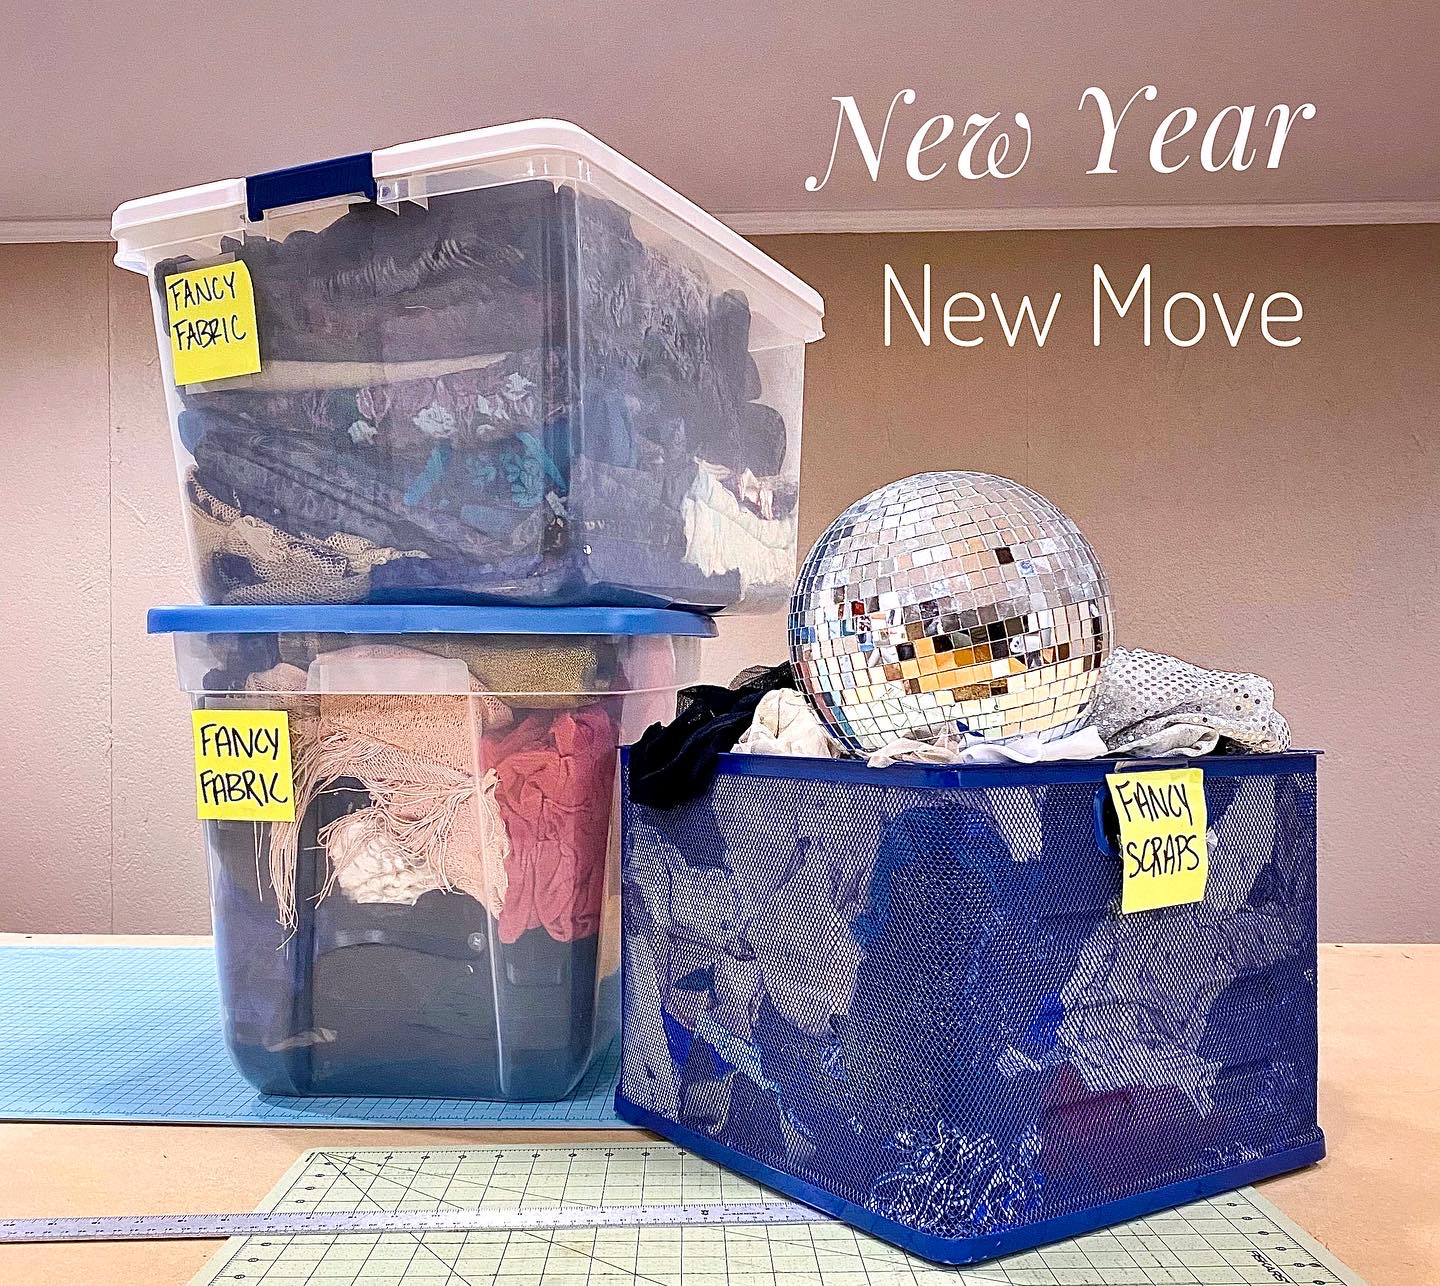 Boxes of fabric and a disco ball. New Year. New Move